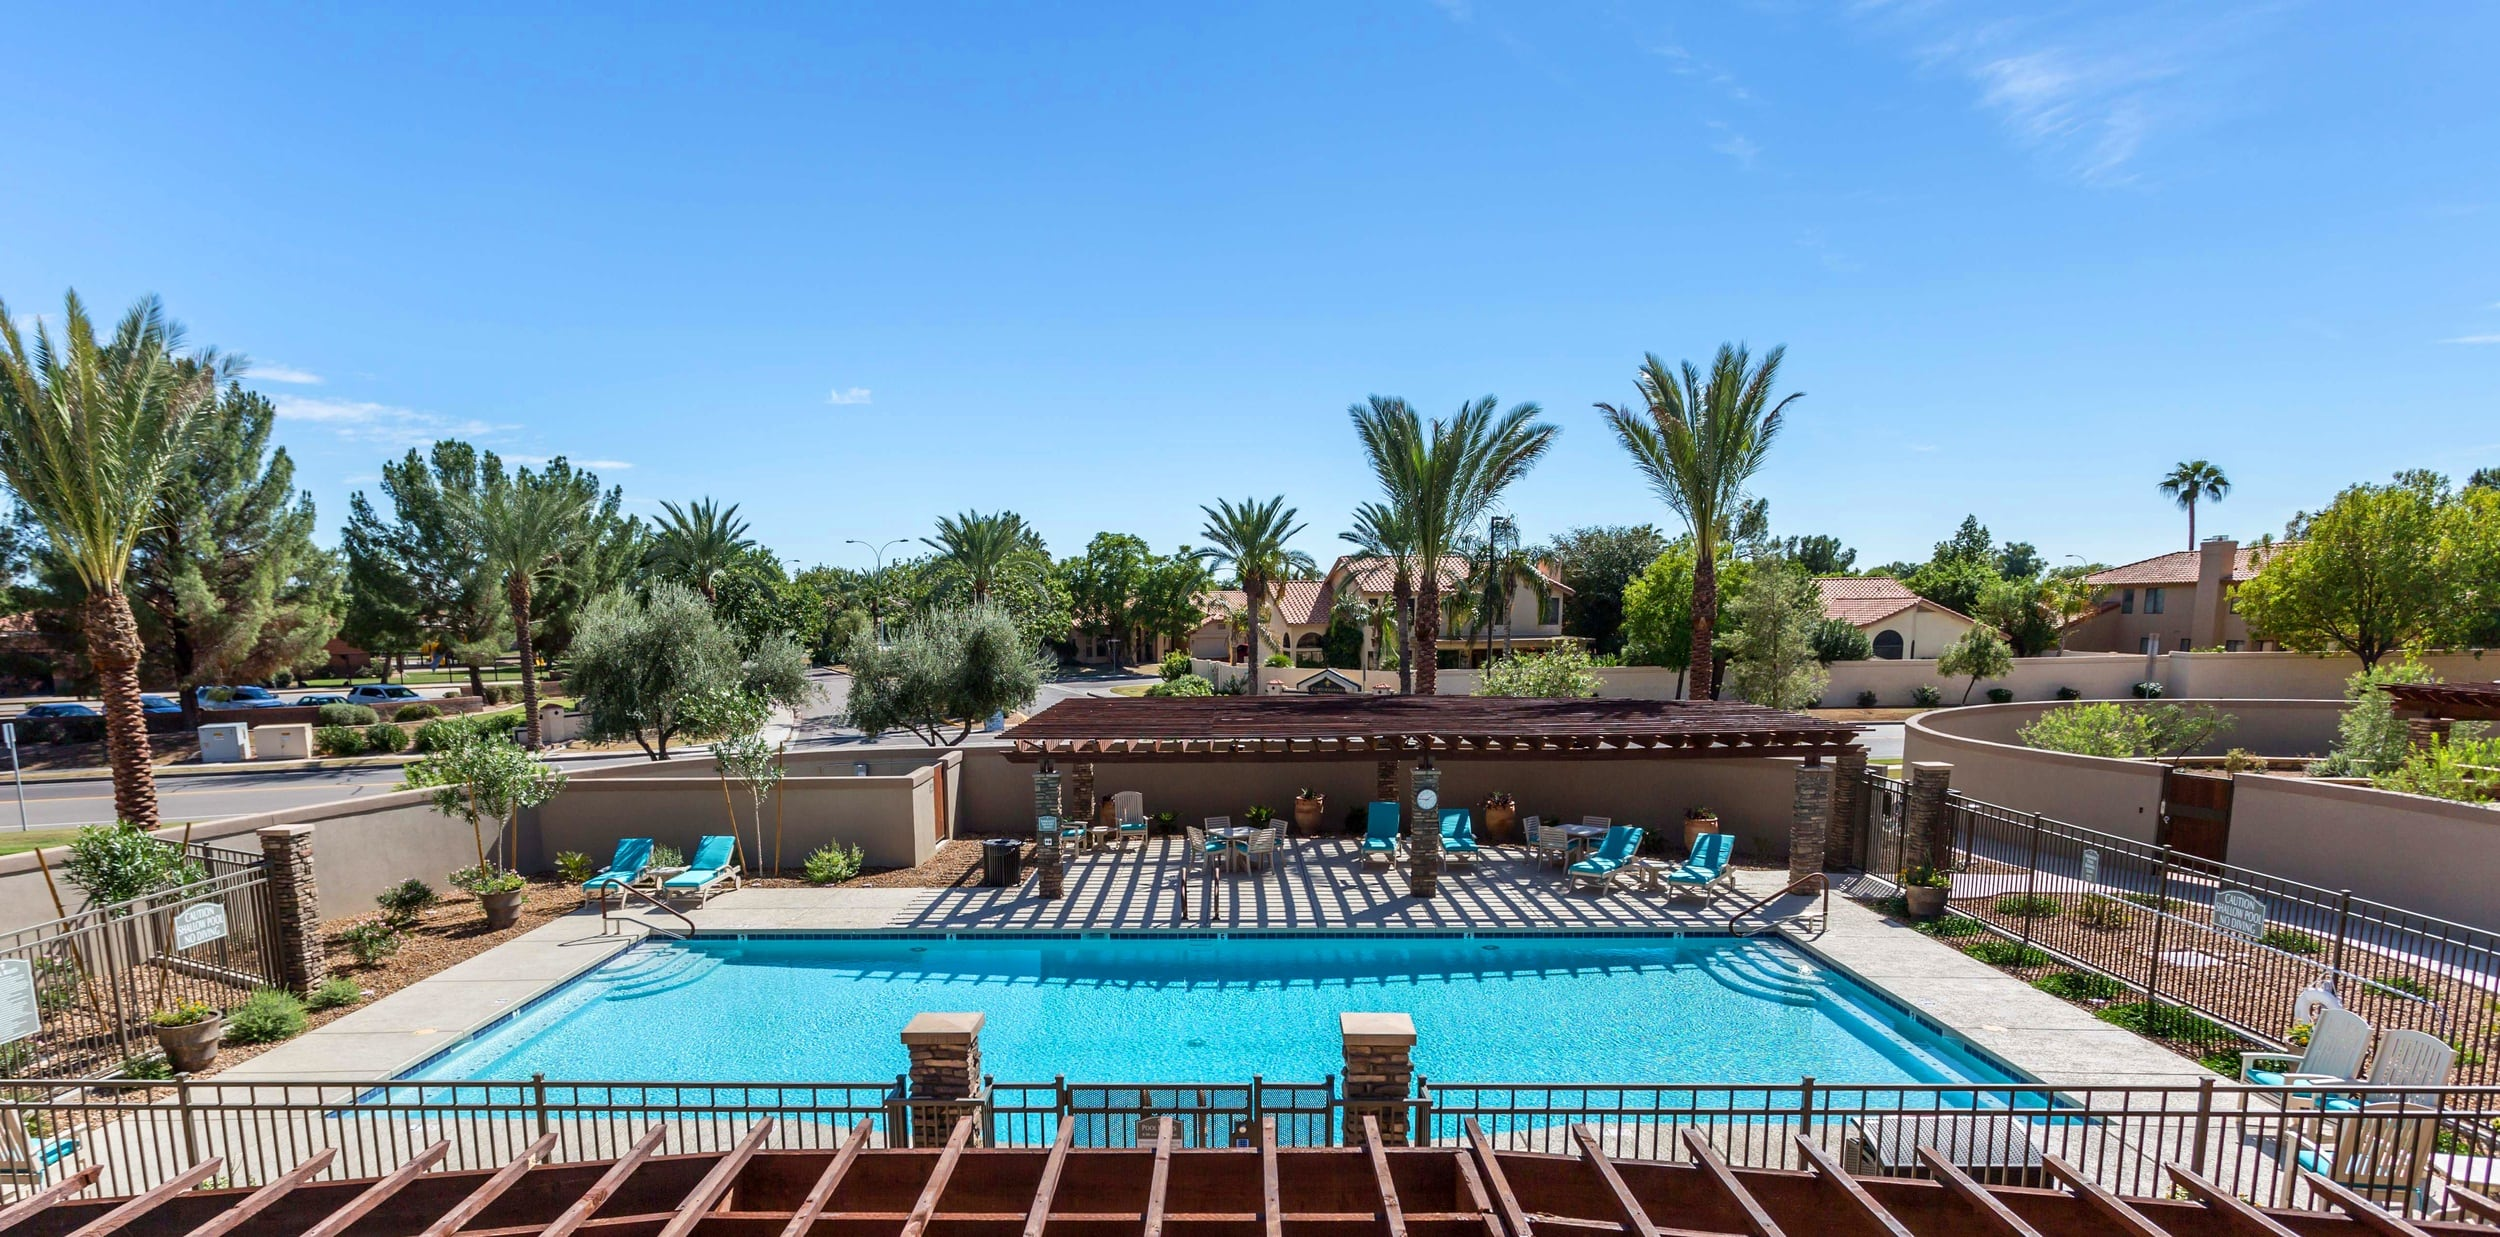 Overlooking pool area at Gardens at Ocotillo Senior Living in Chandler, AZ